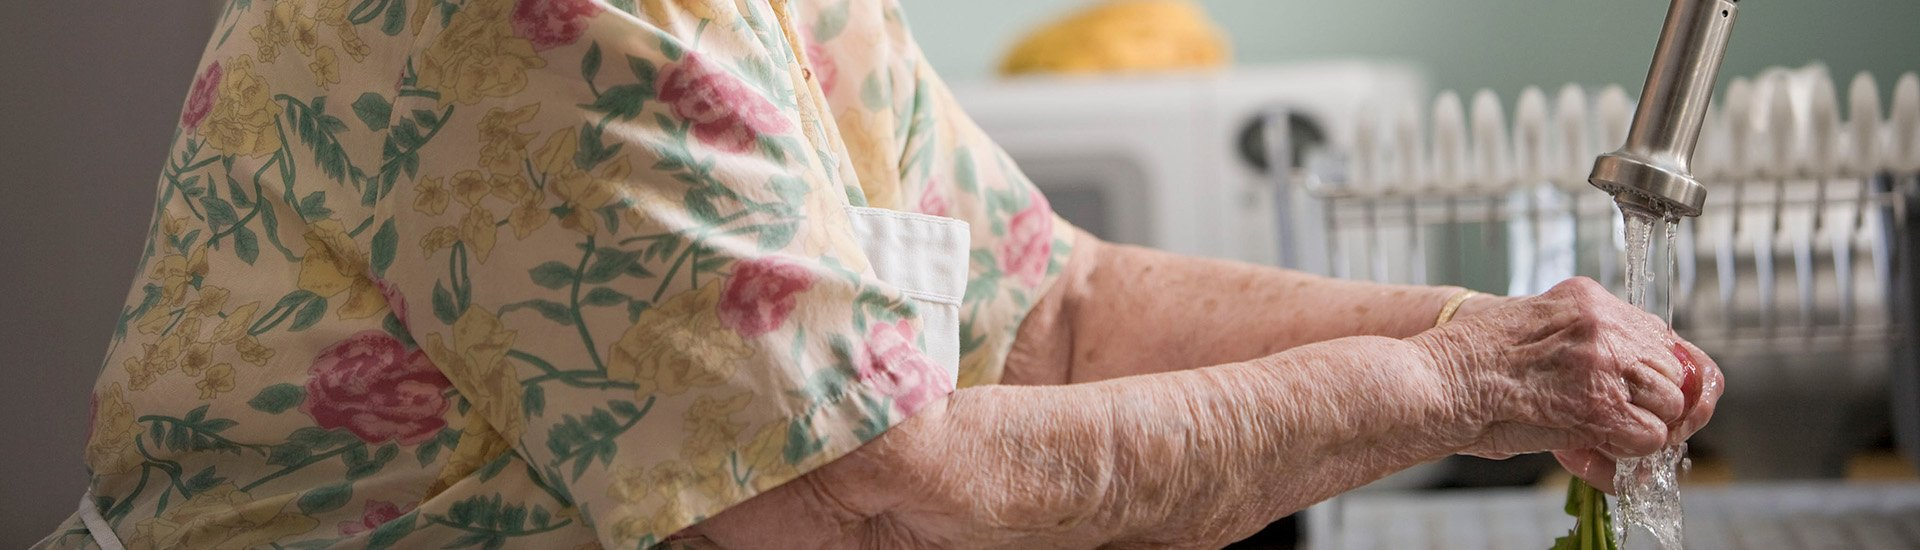 older-person-washing-hands